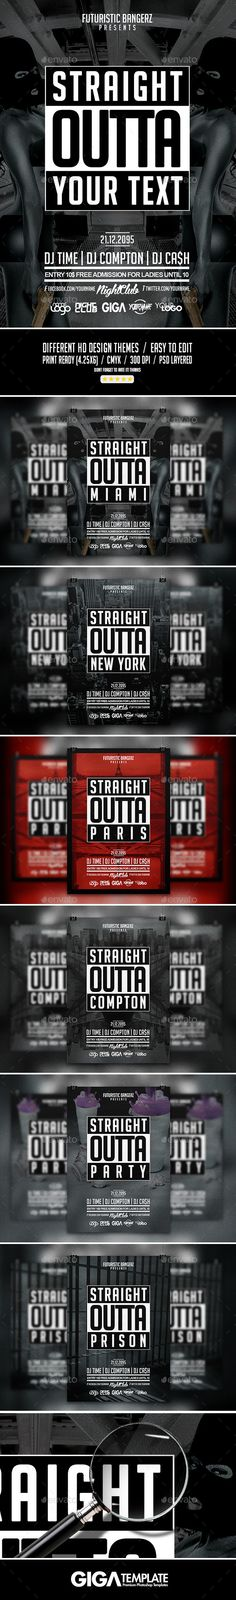 Trap Music Flyer Template    wwwjustledsza    www - benefit flyer template